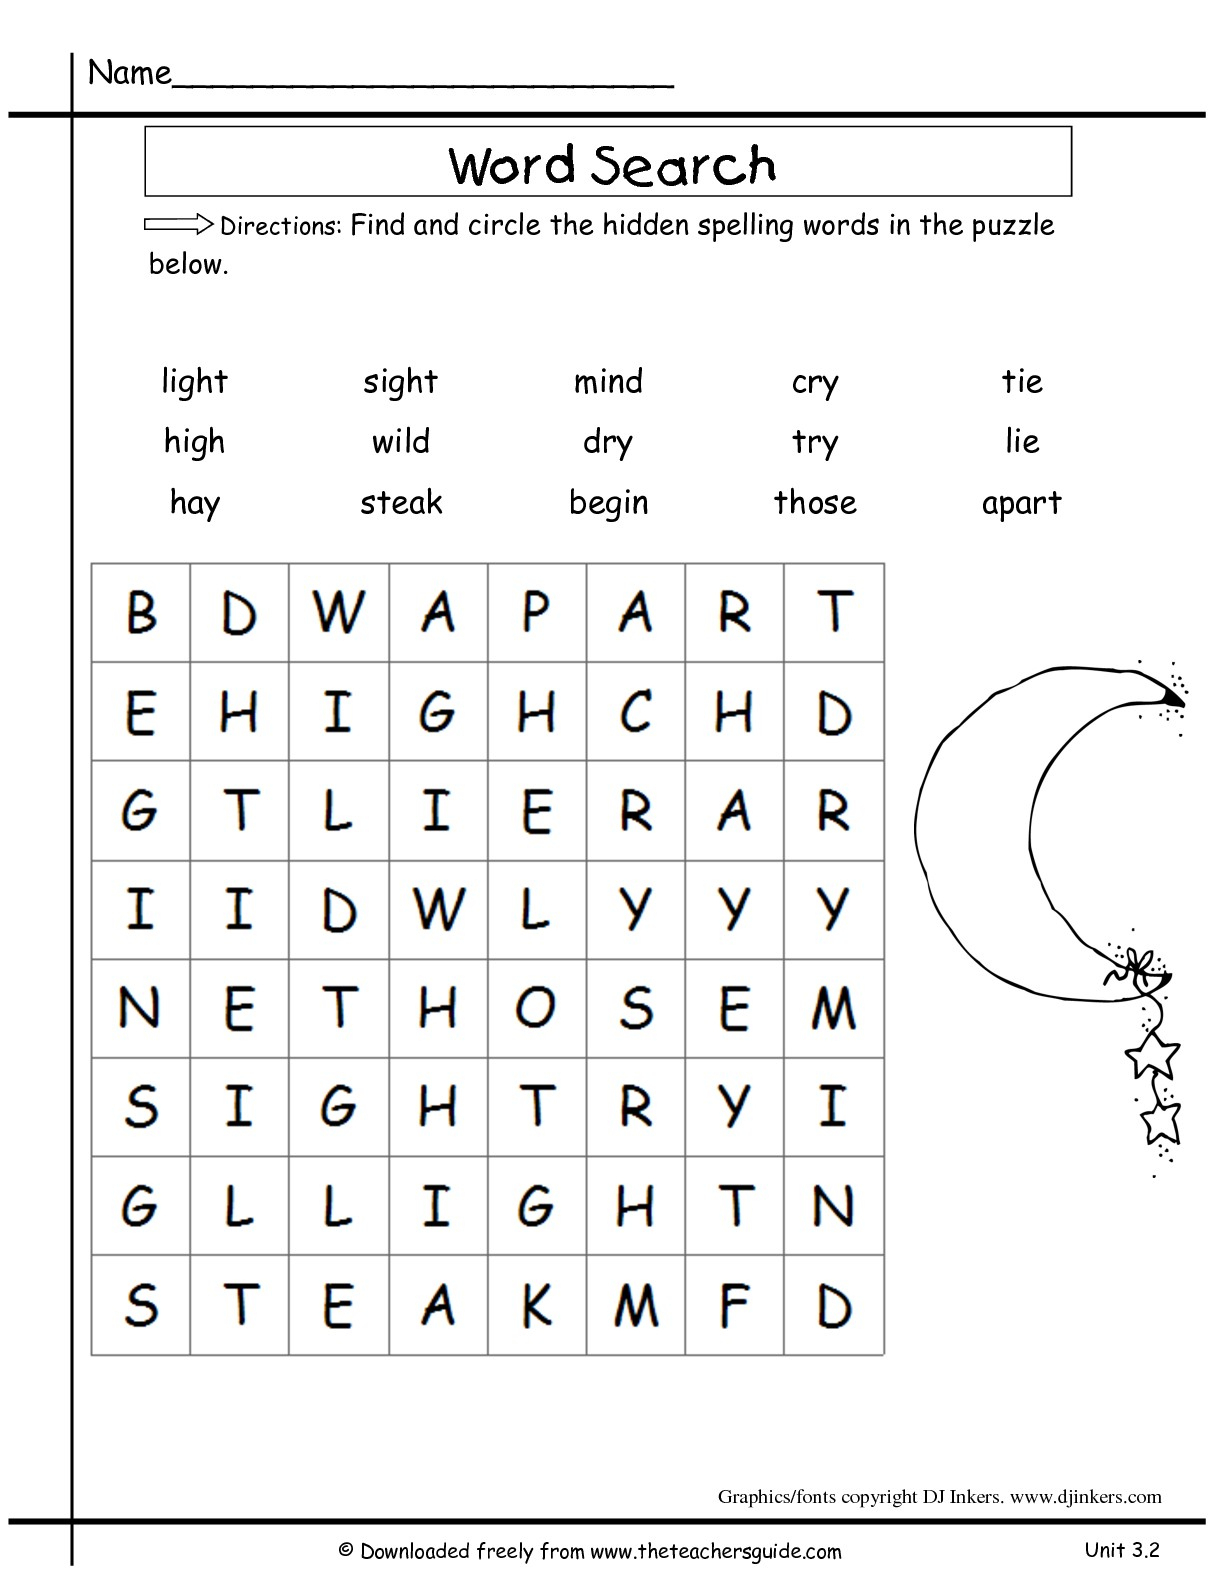 Wonders Second Grade Unit Three Week Two Printouts - Printable Compound Word Crossword Puzzle